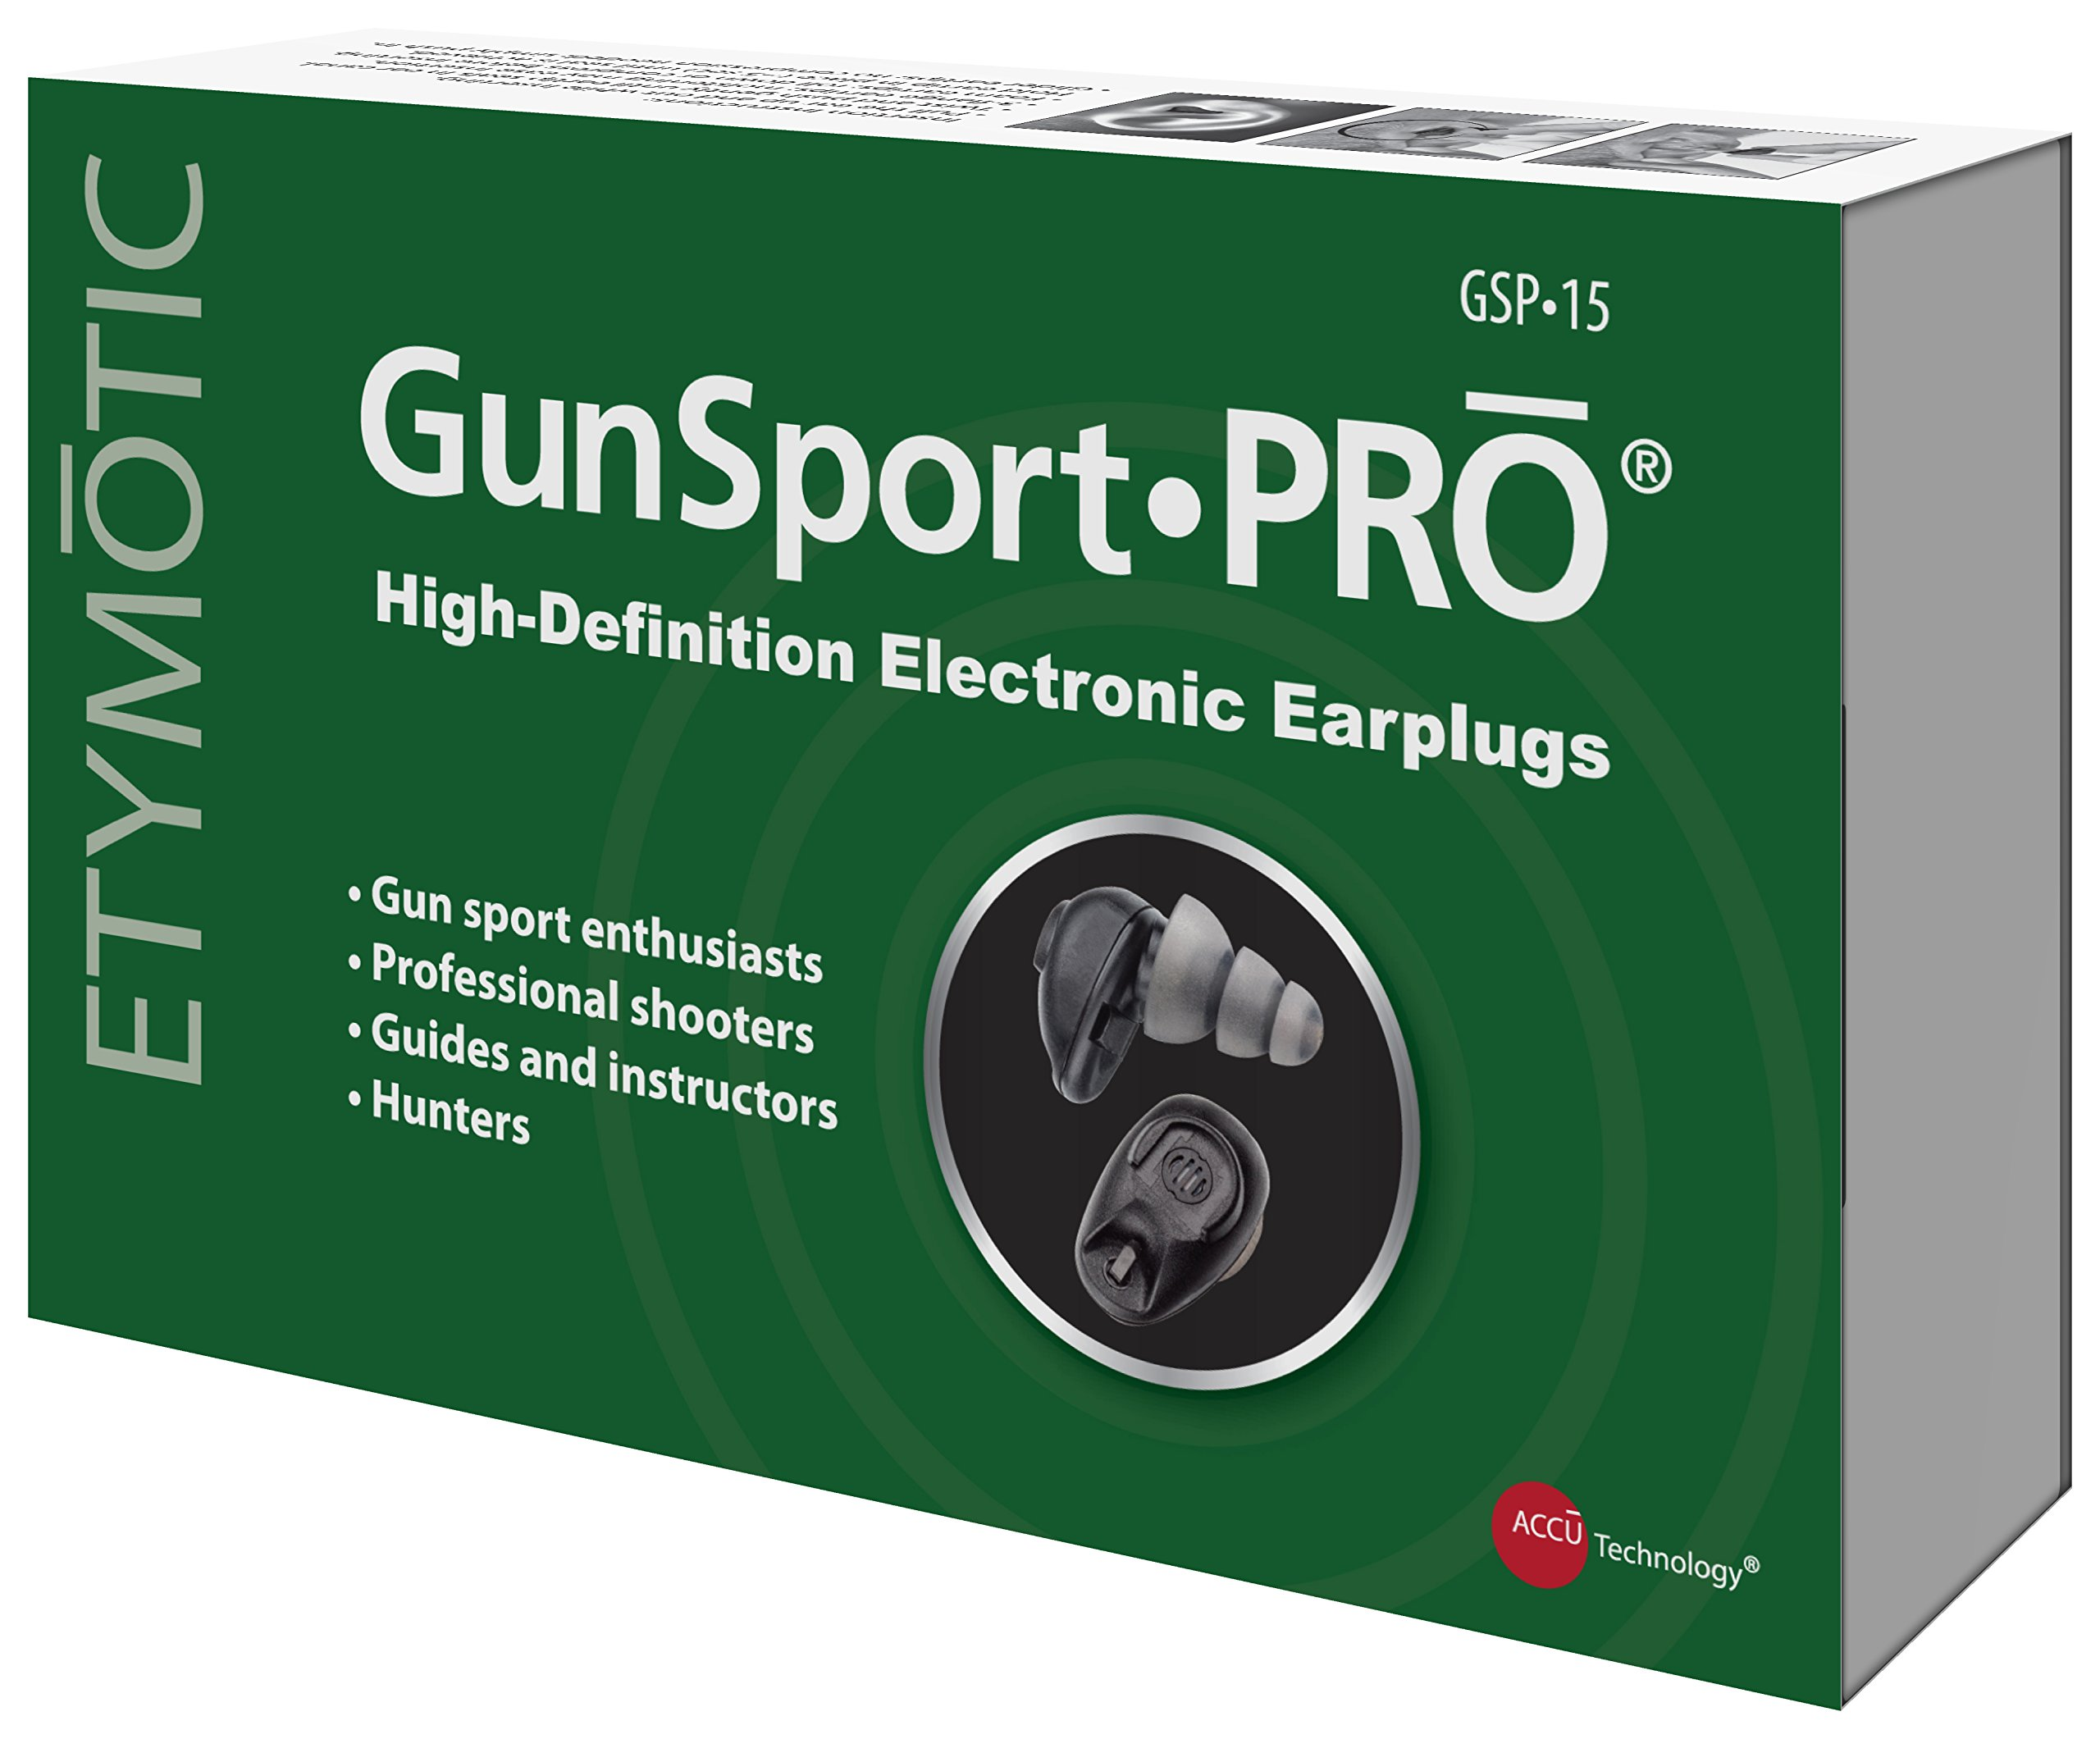 Etymotic GunsportPRO Earplugs, Electronic Hearing Protection Designed for Hunters, Shooters and Gun Enthusiasts, 1 pair, Black by Etymotic Research (Image #5)